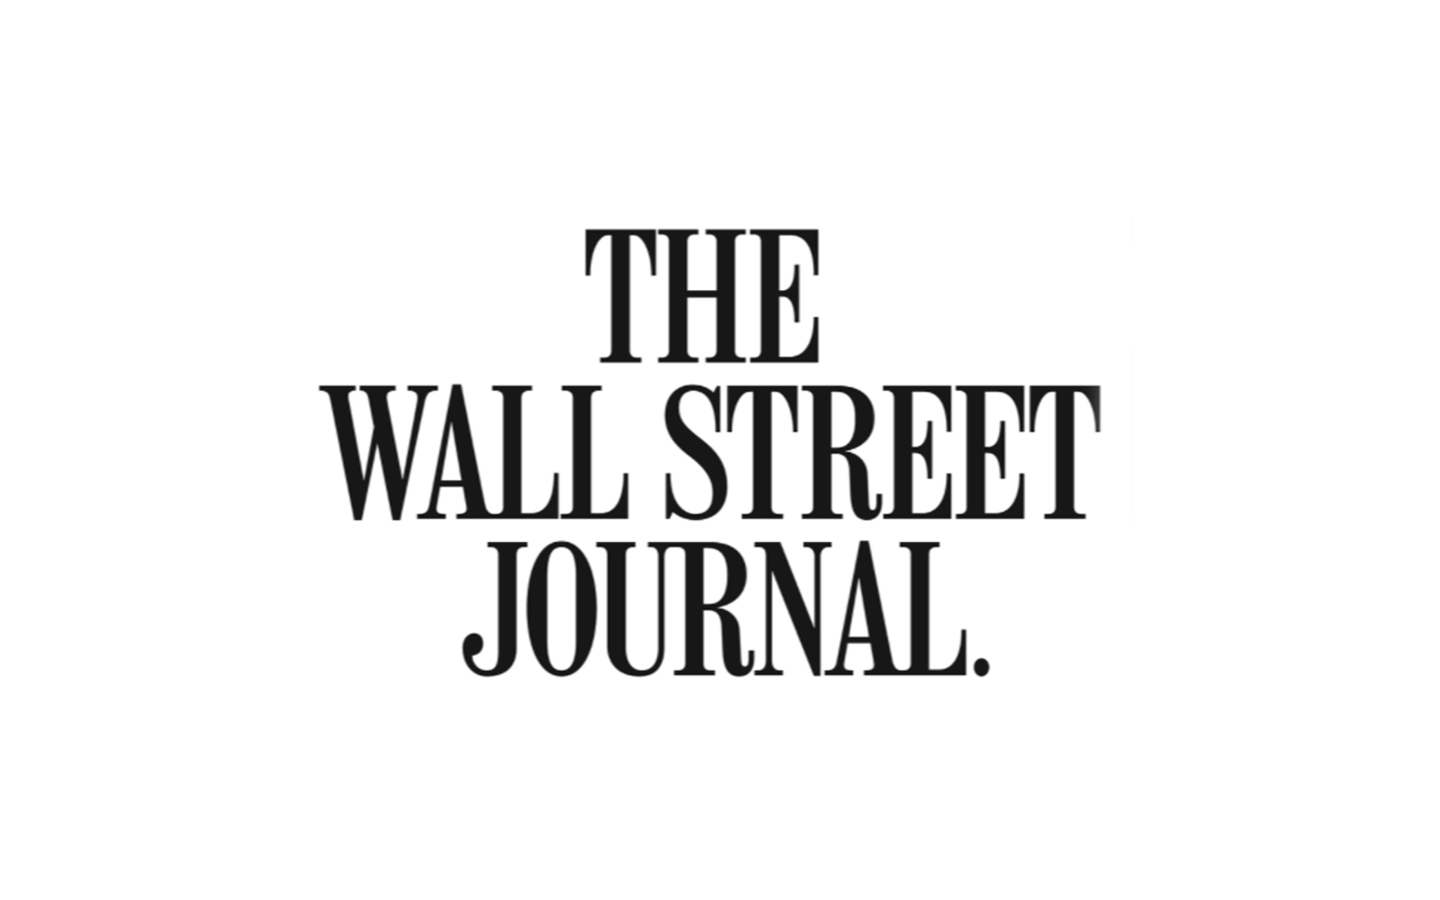 Wall Street Journal: Baby Boomers underestimate their retirement needs